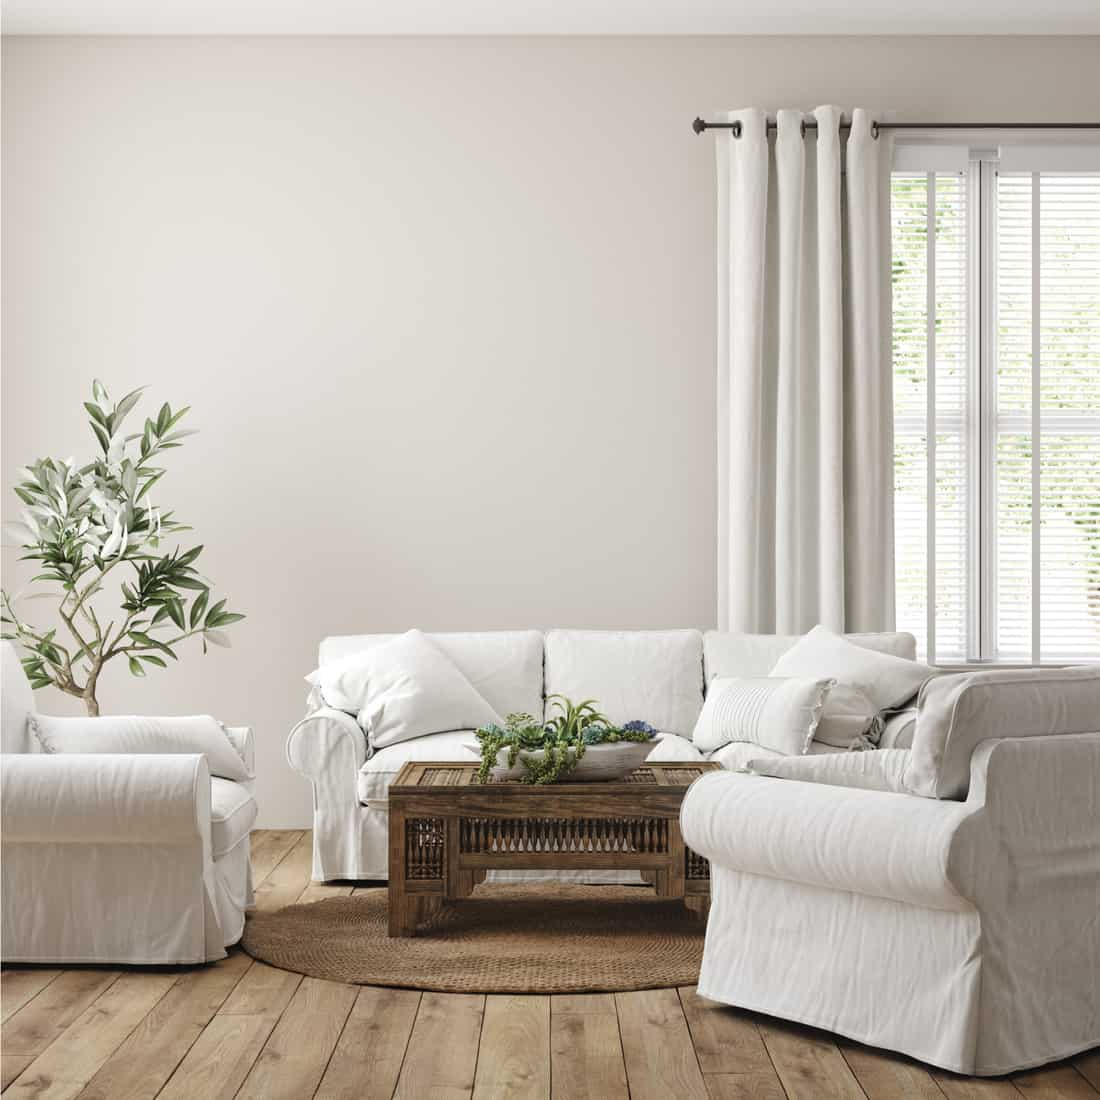 Scandinavian farmhouse living room interior, two armchairs and a sofa